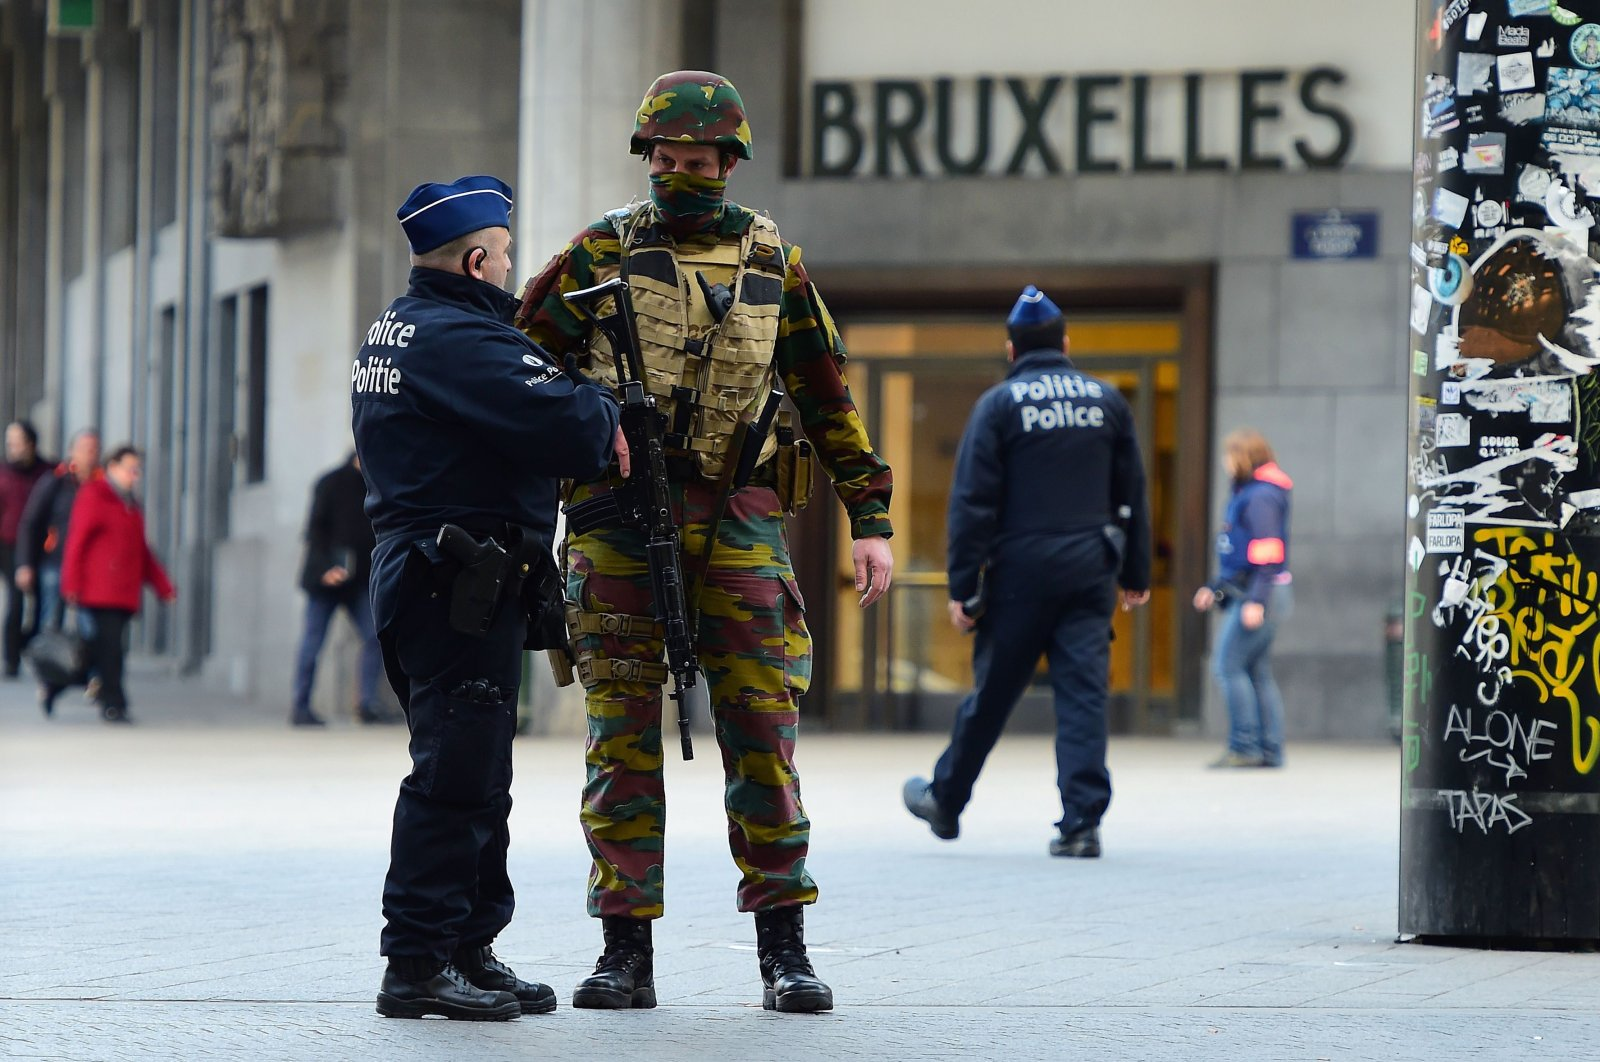 A soldier speaks to a police officer outside Brussels Central Station, in Brussels, Belgium, March 22, 2016. (AFP Photo)